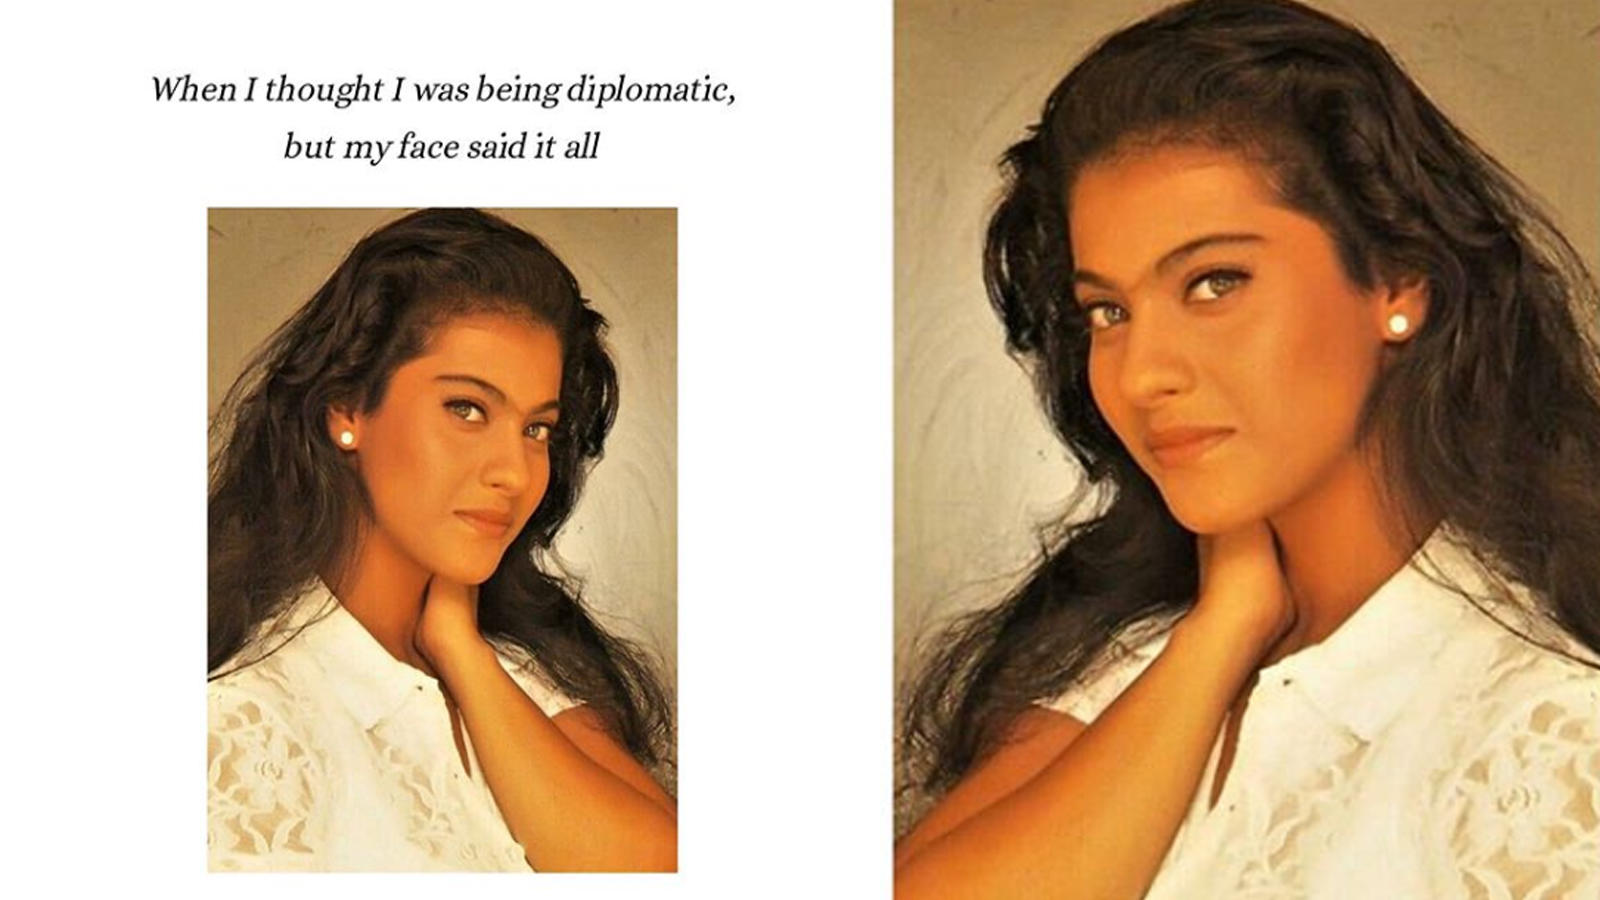 kajol-shares-hilarious-post-along-with-her-evergreen-picture-writes-when-i-thought-i-was-being-diplomatic-but-my-face-said-it-all